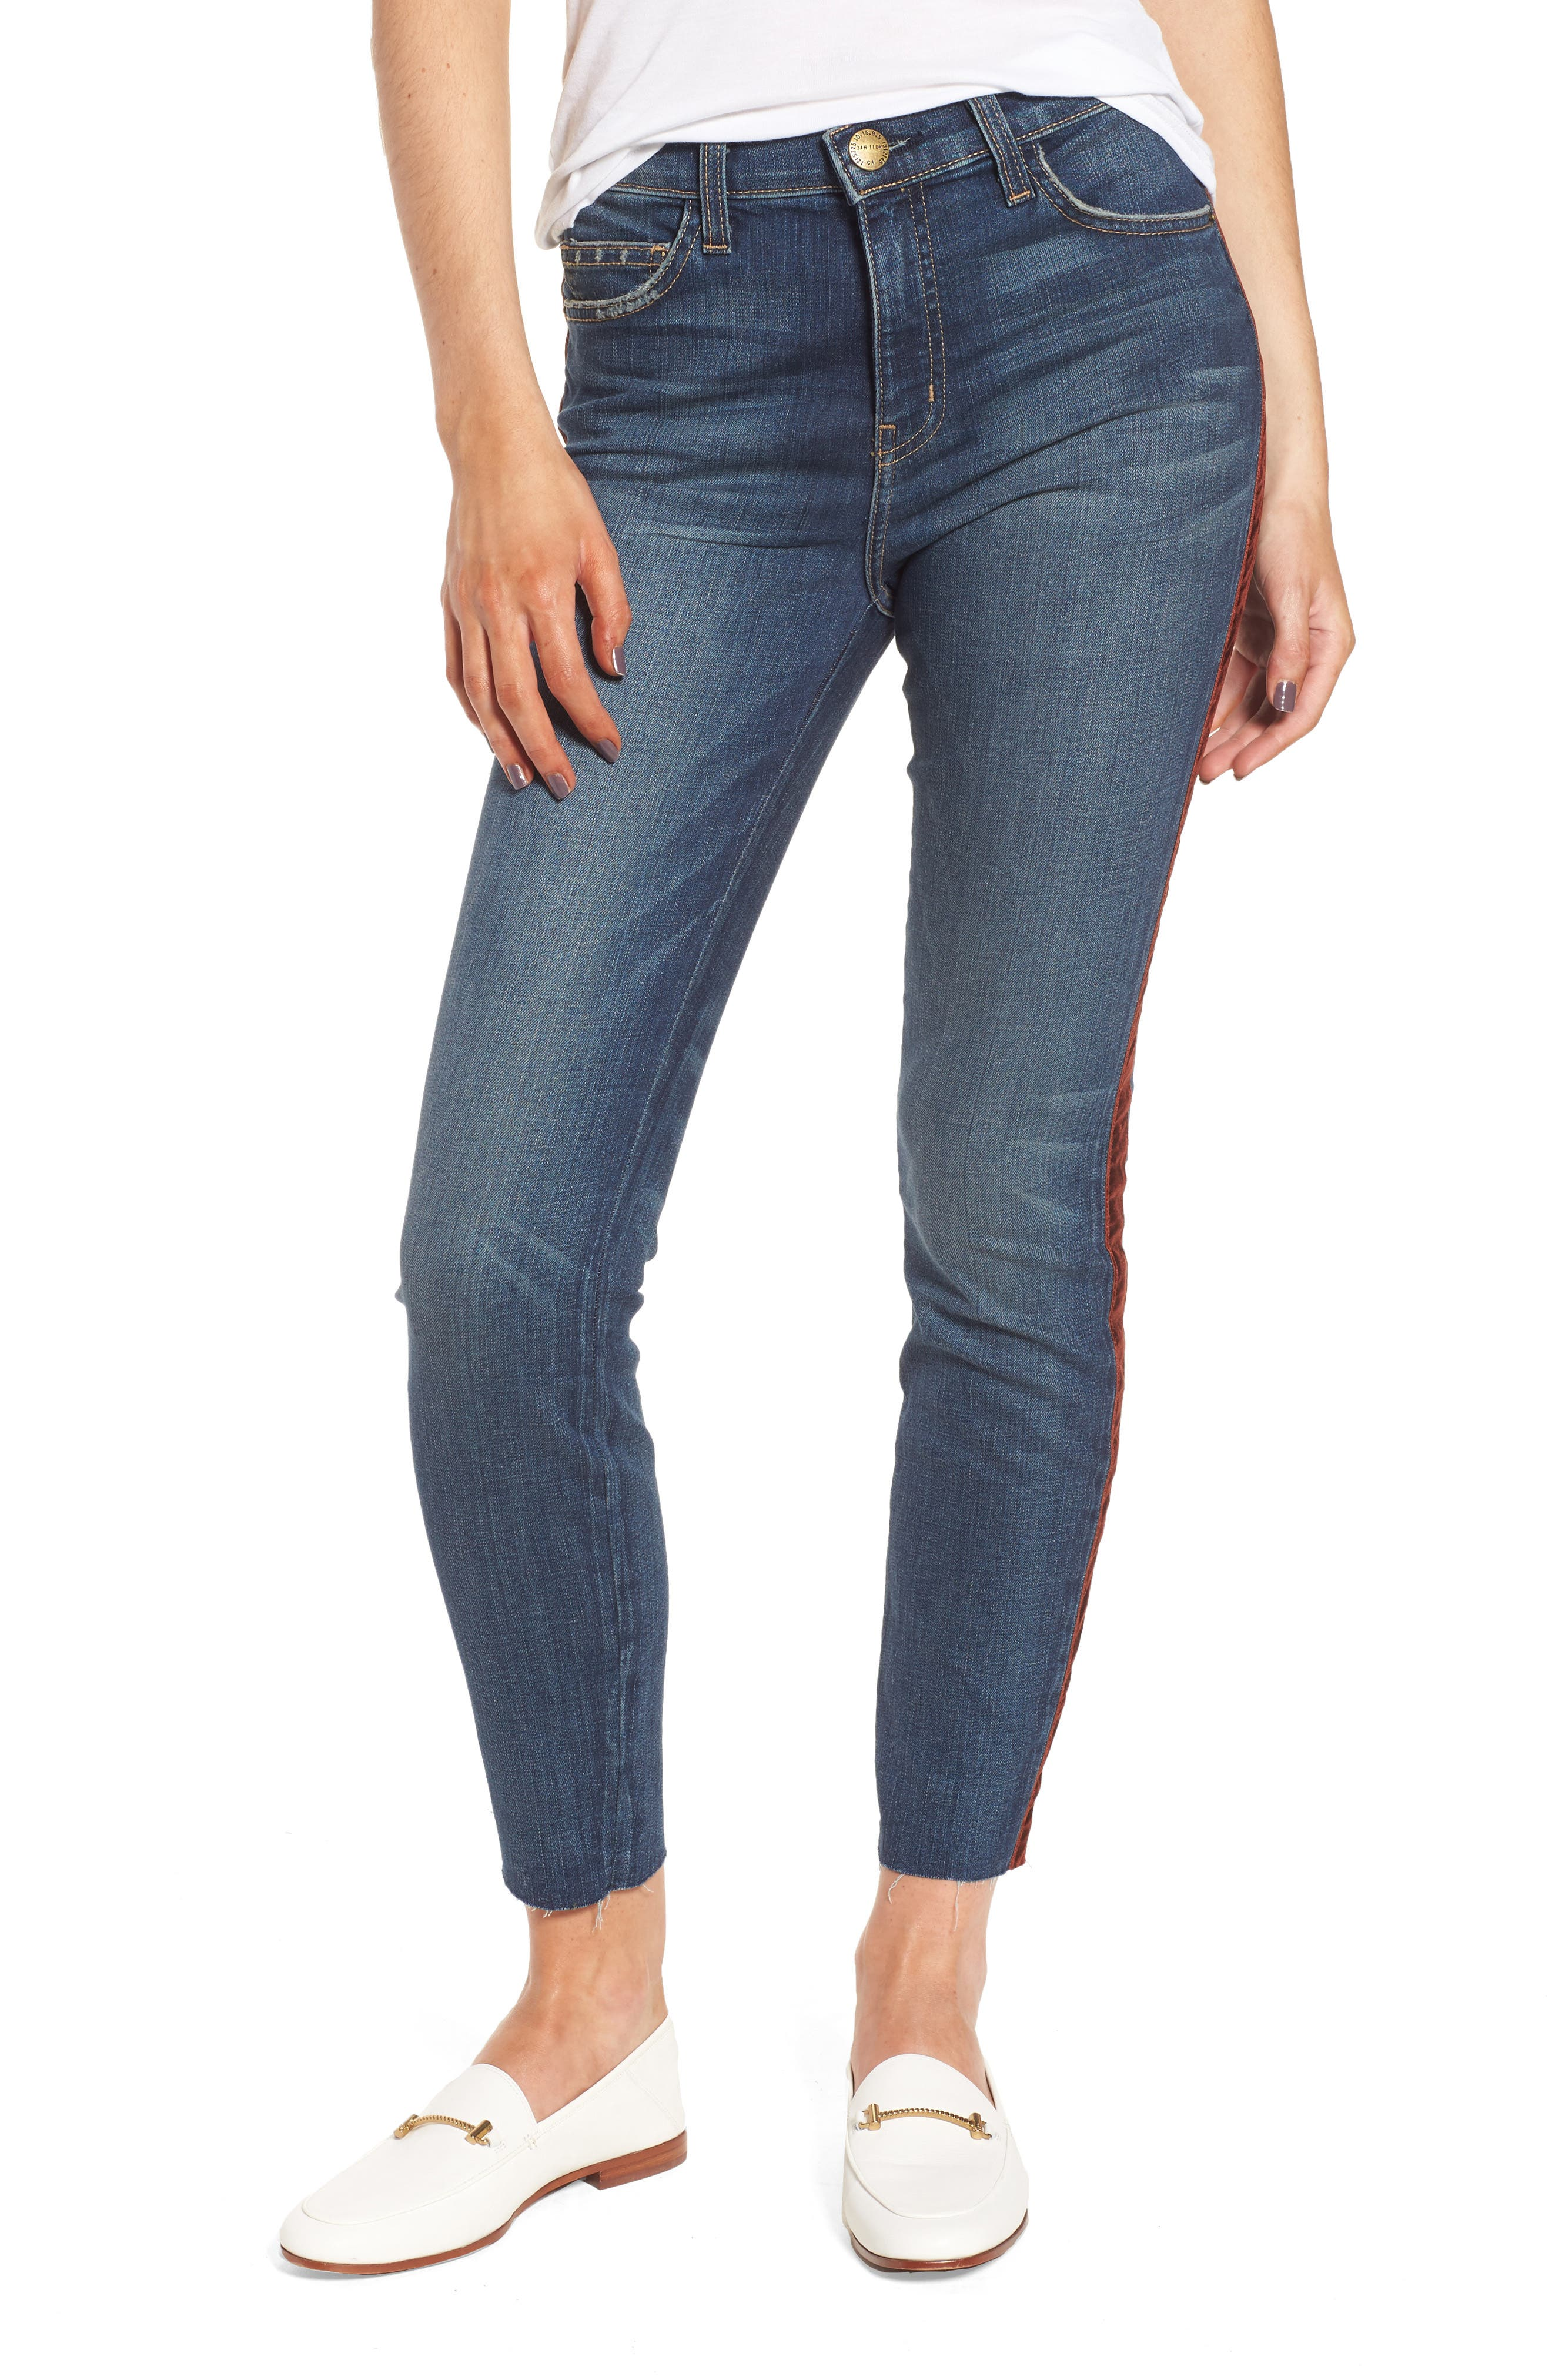 Main Image - Current/Elliott The High Waist Stiletto Ankle Skinny Jeans (Townie)